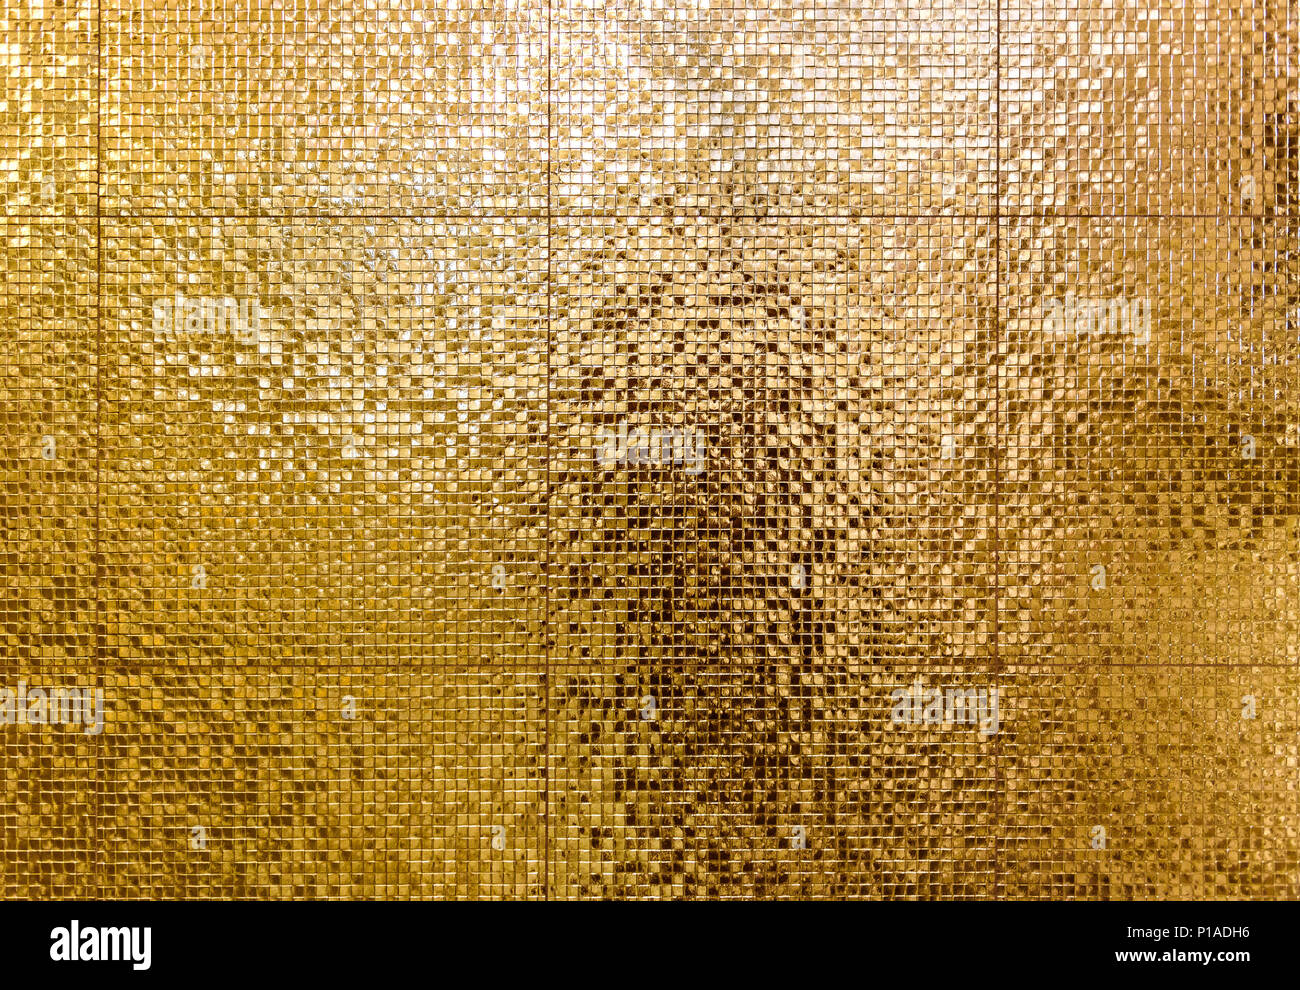 Wallpaper Stone 3d Luxury Gold Mosaic Tiles Background For Bathroom Or